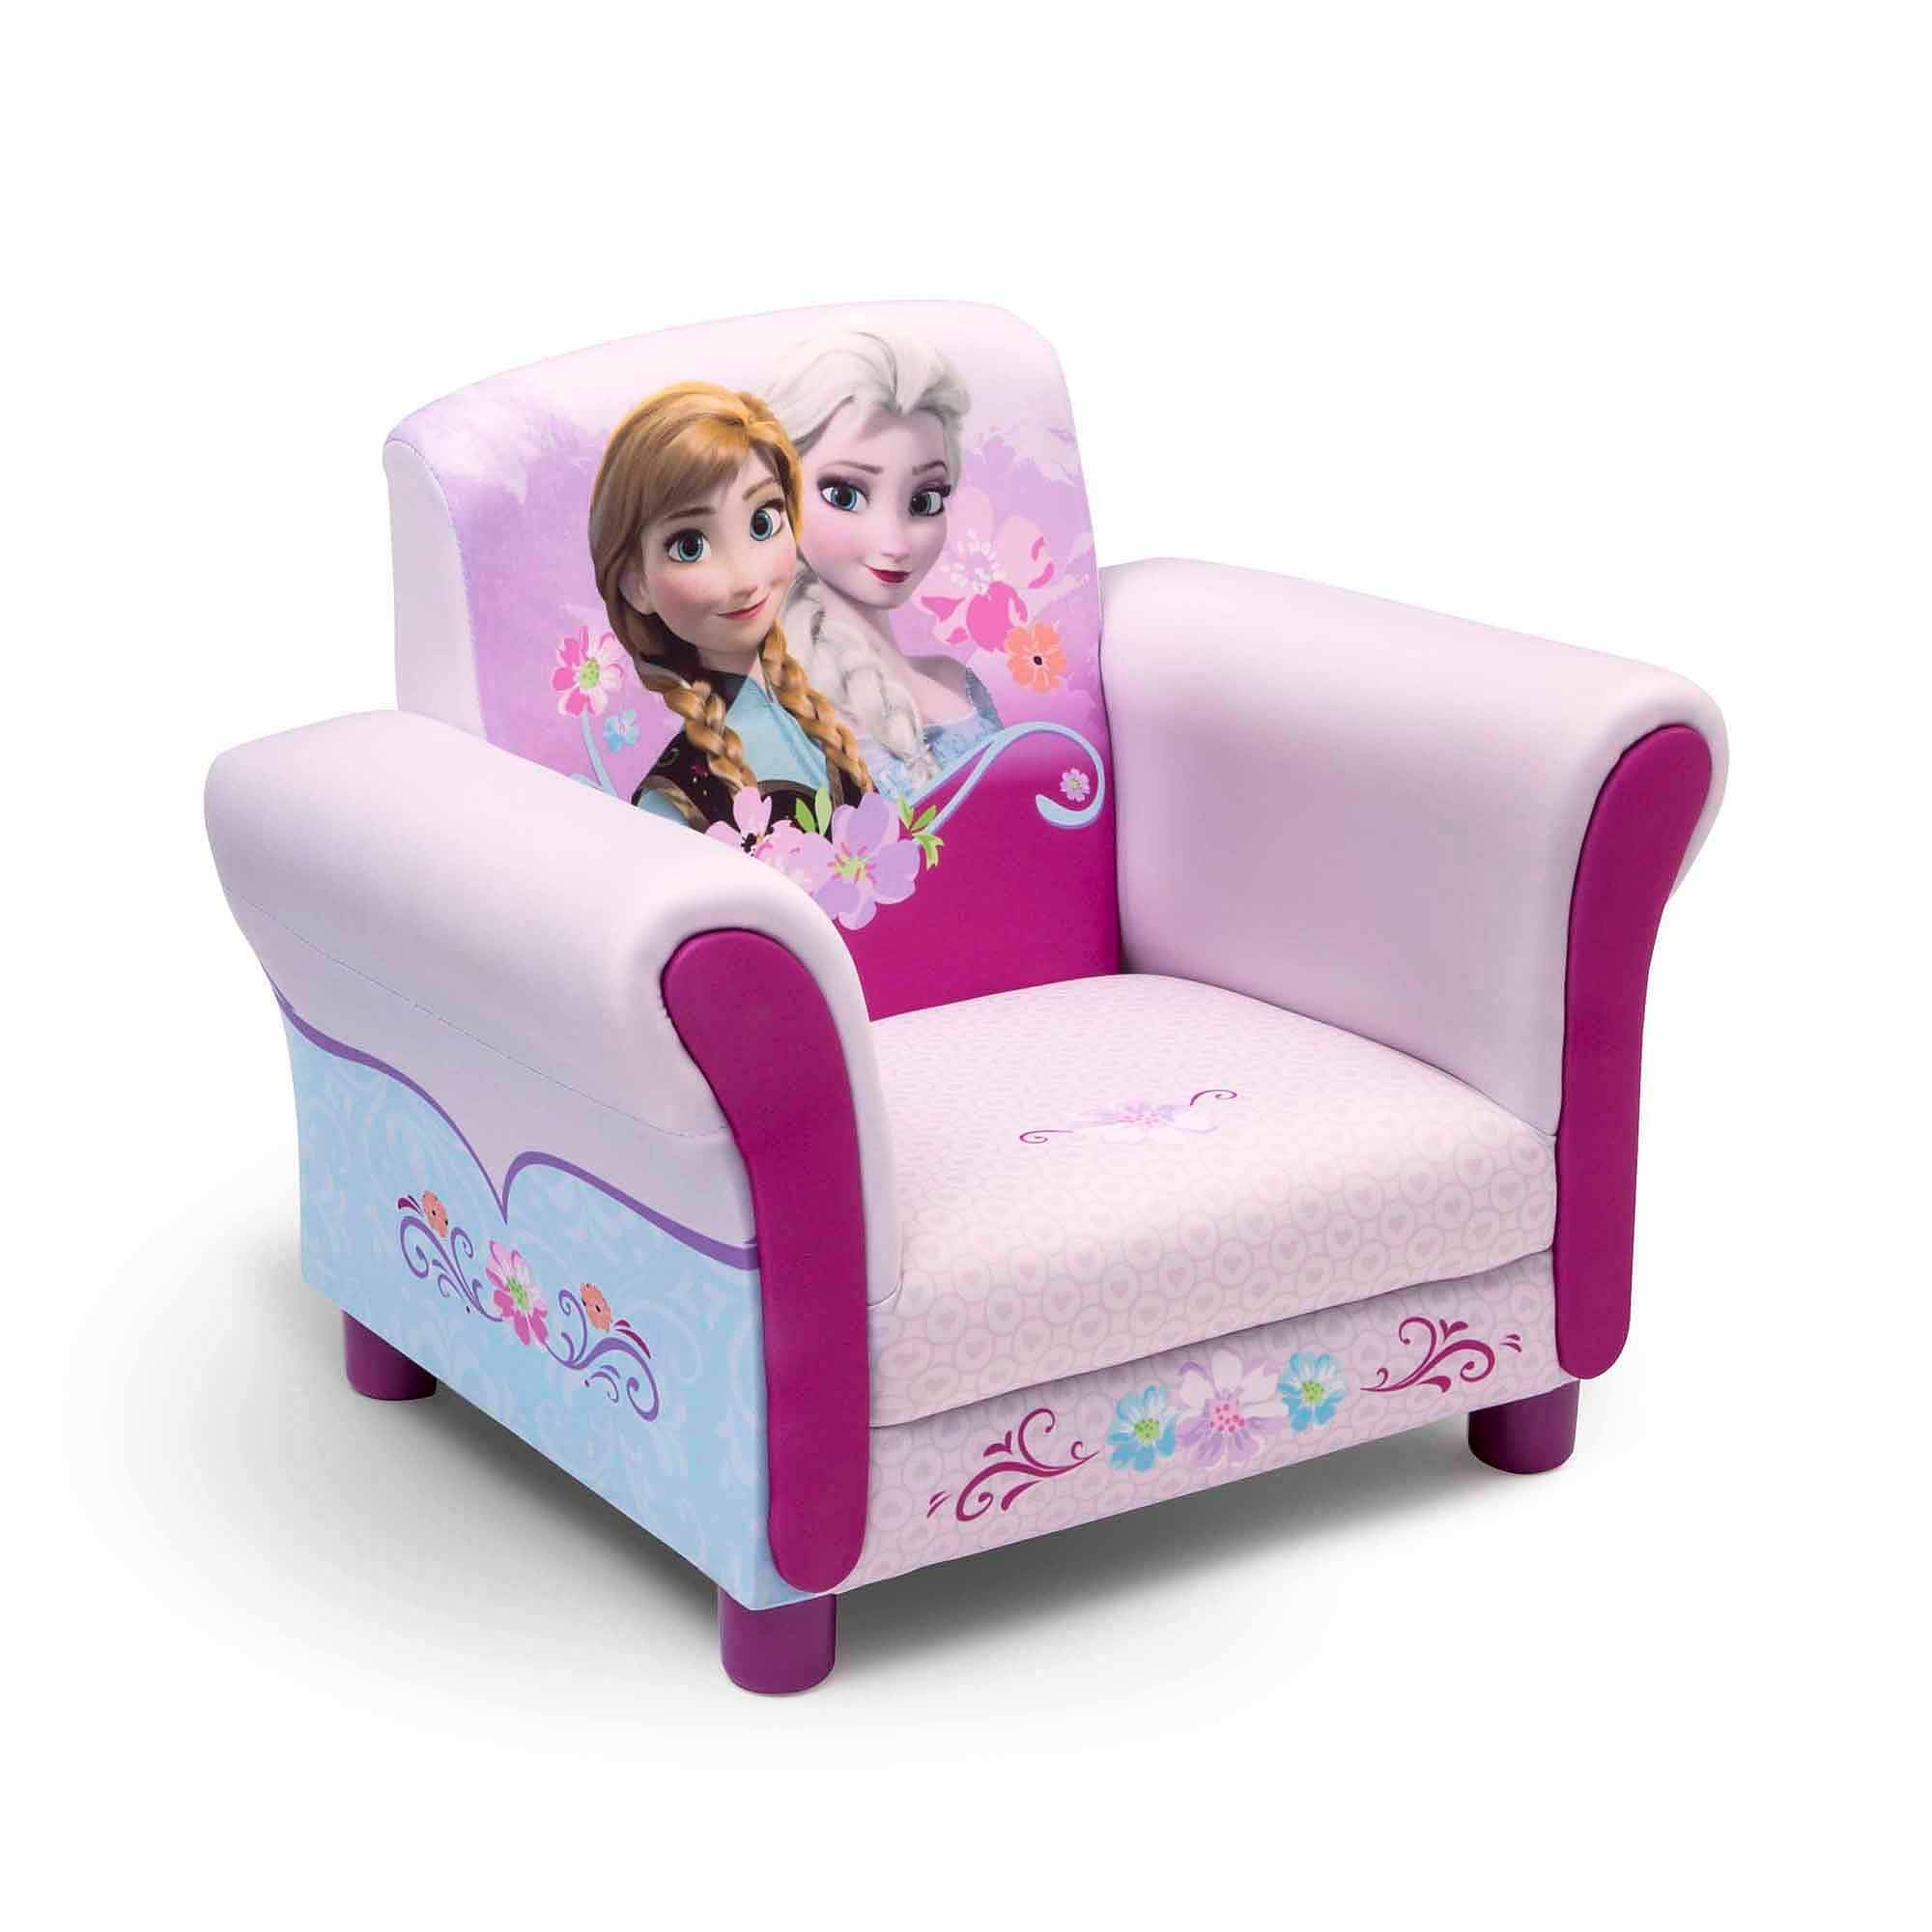 Sofas Center : Phenomenalrens Sofa Chair Photos Inspirationsren intended for Toddler Sofa Chairs (Image 12 of 15)